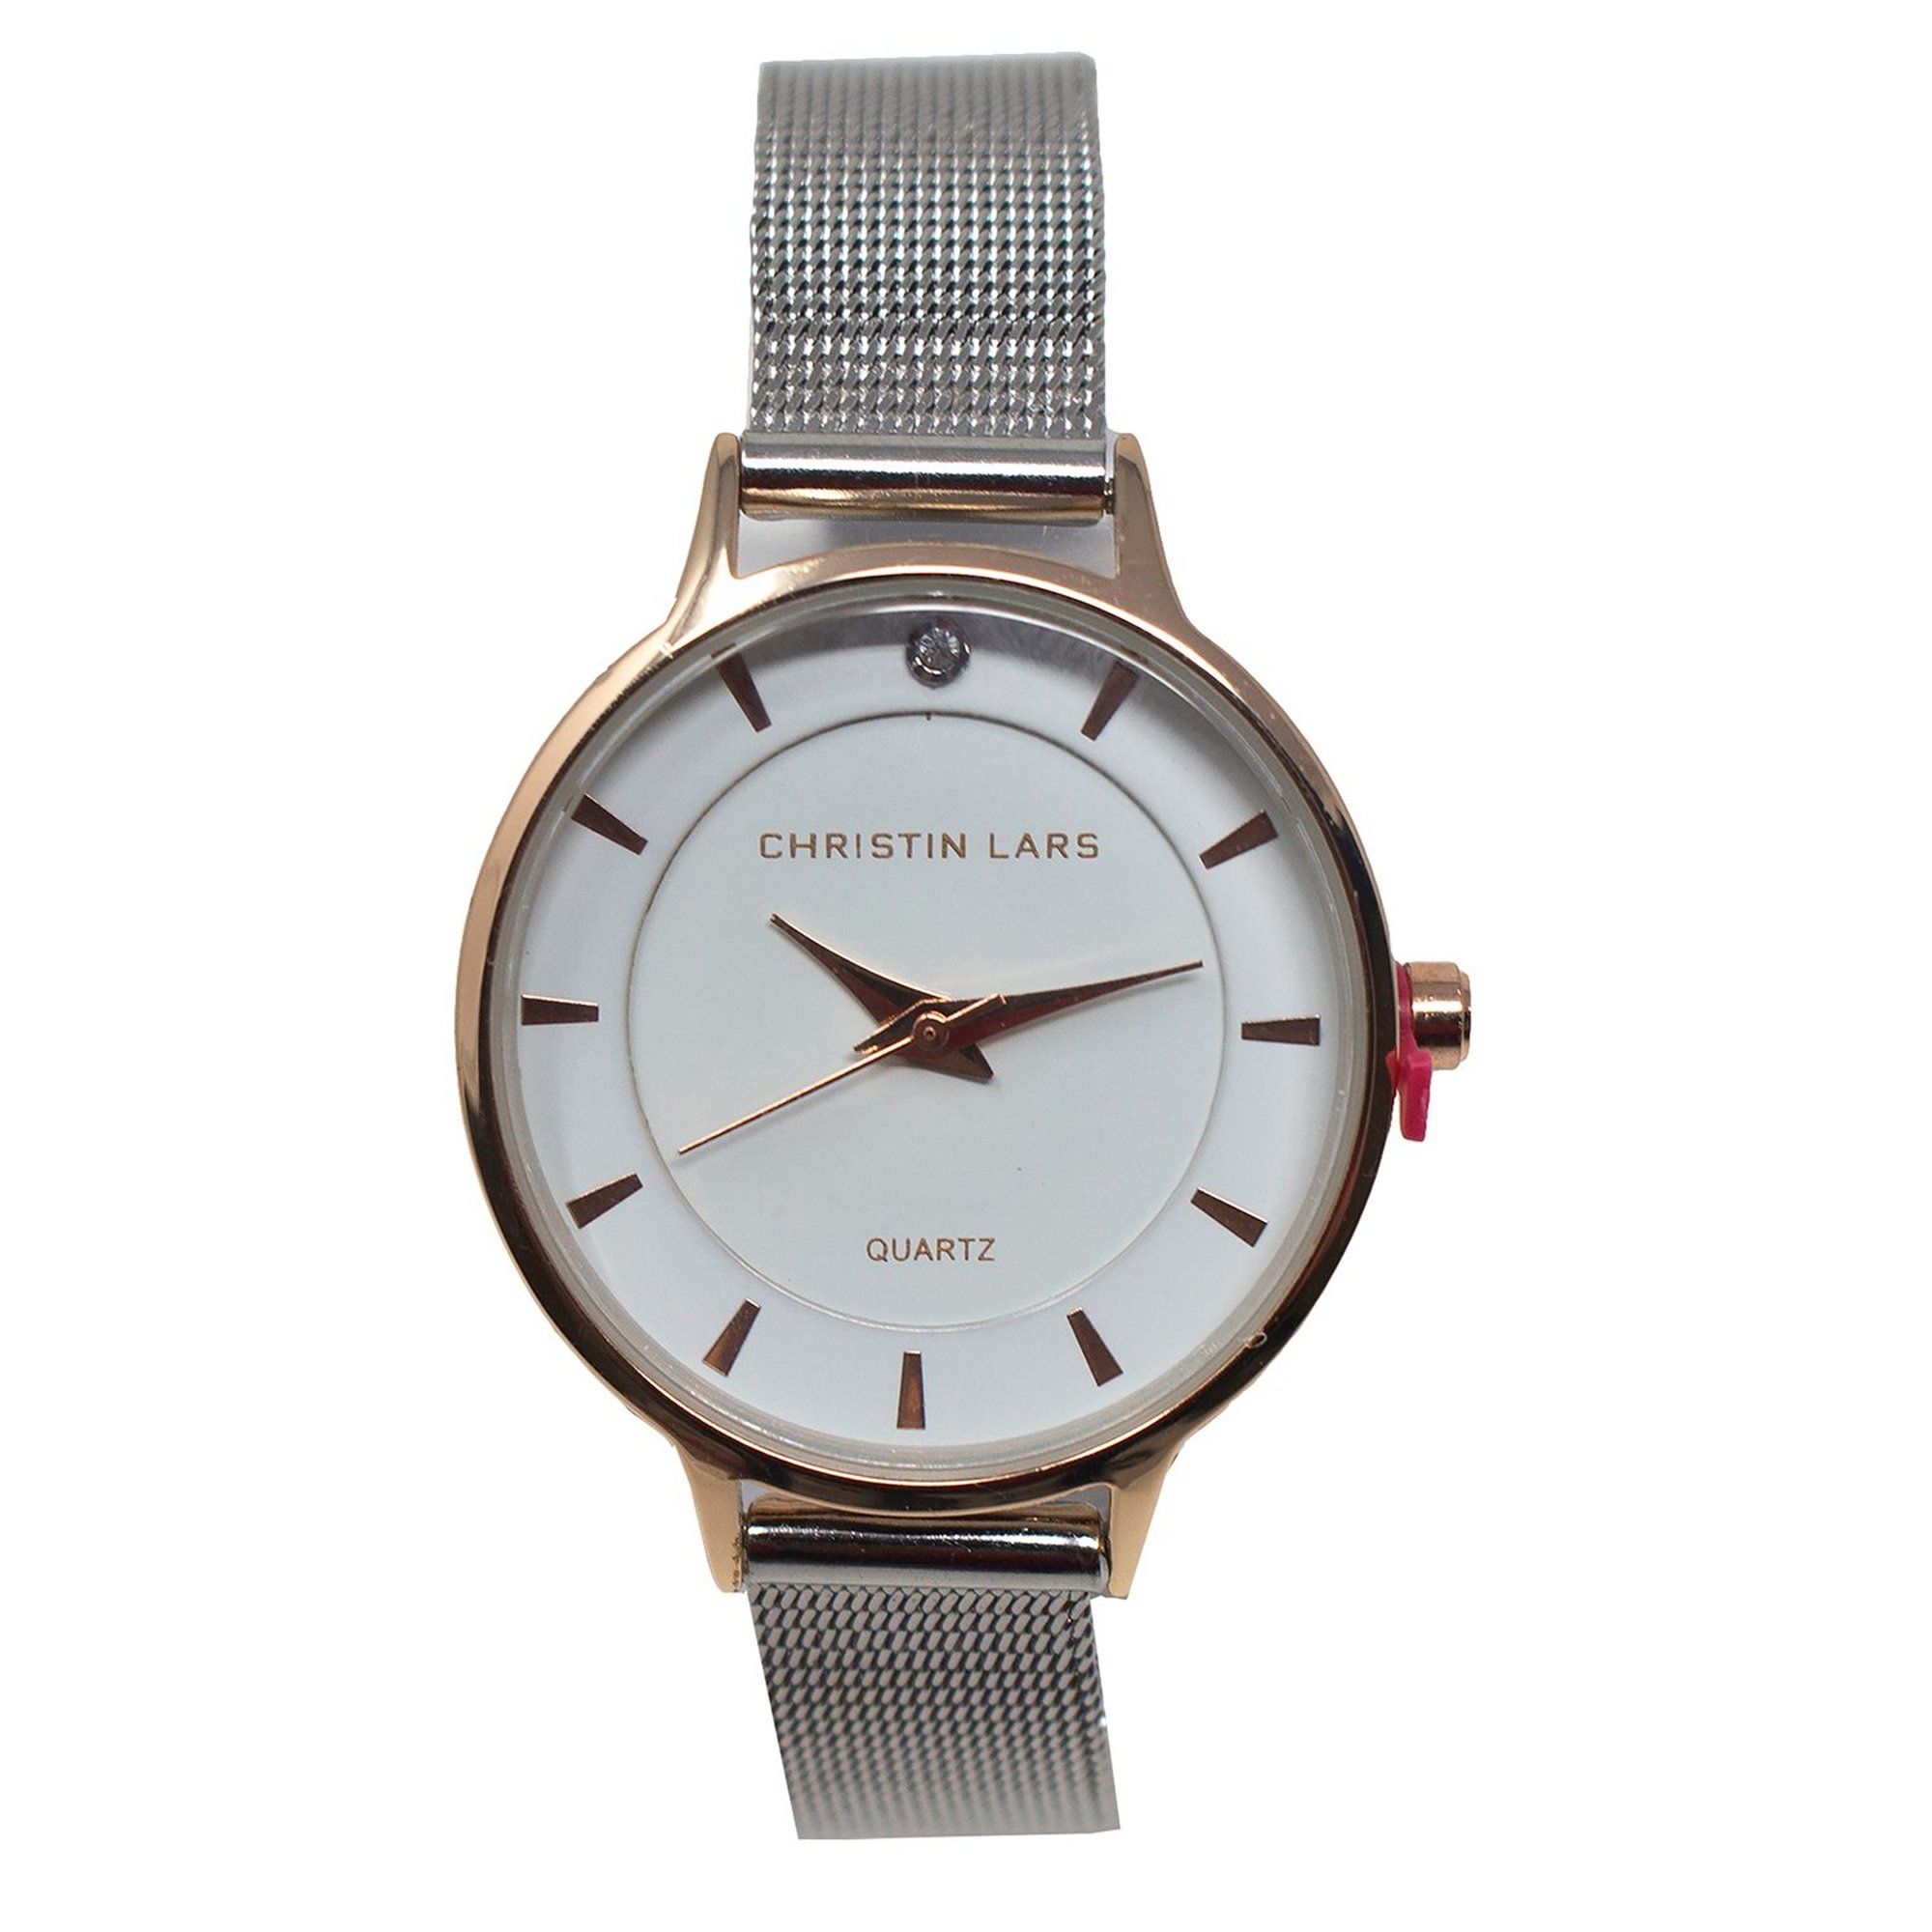 Image of Christin Lars Silver Mesh Strap Watch with White Dial